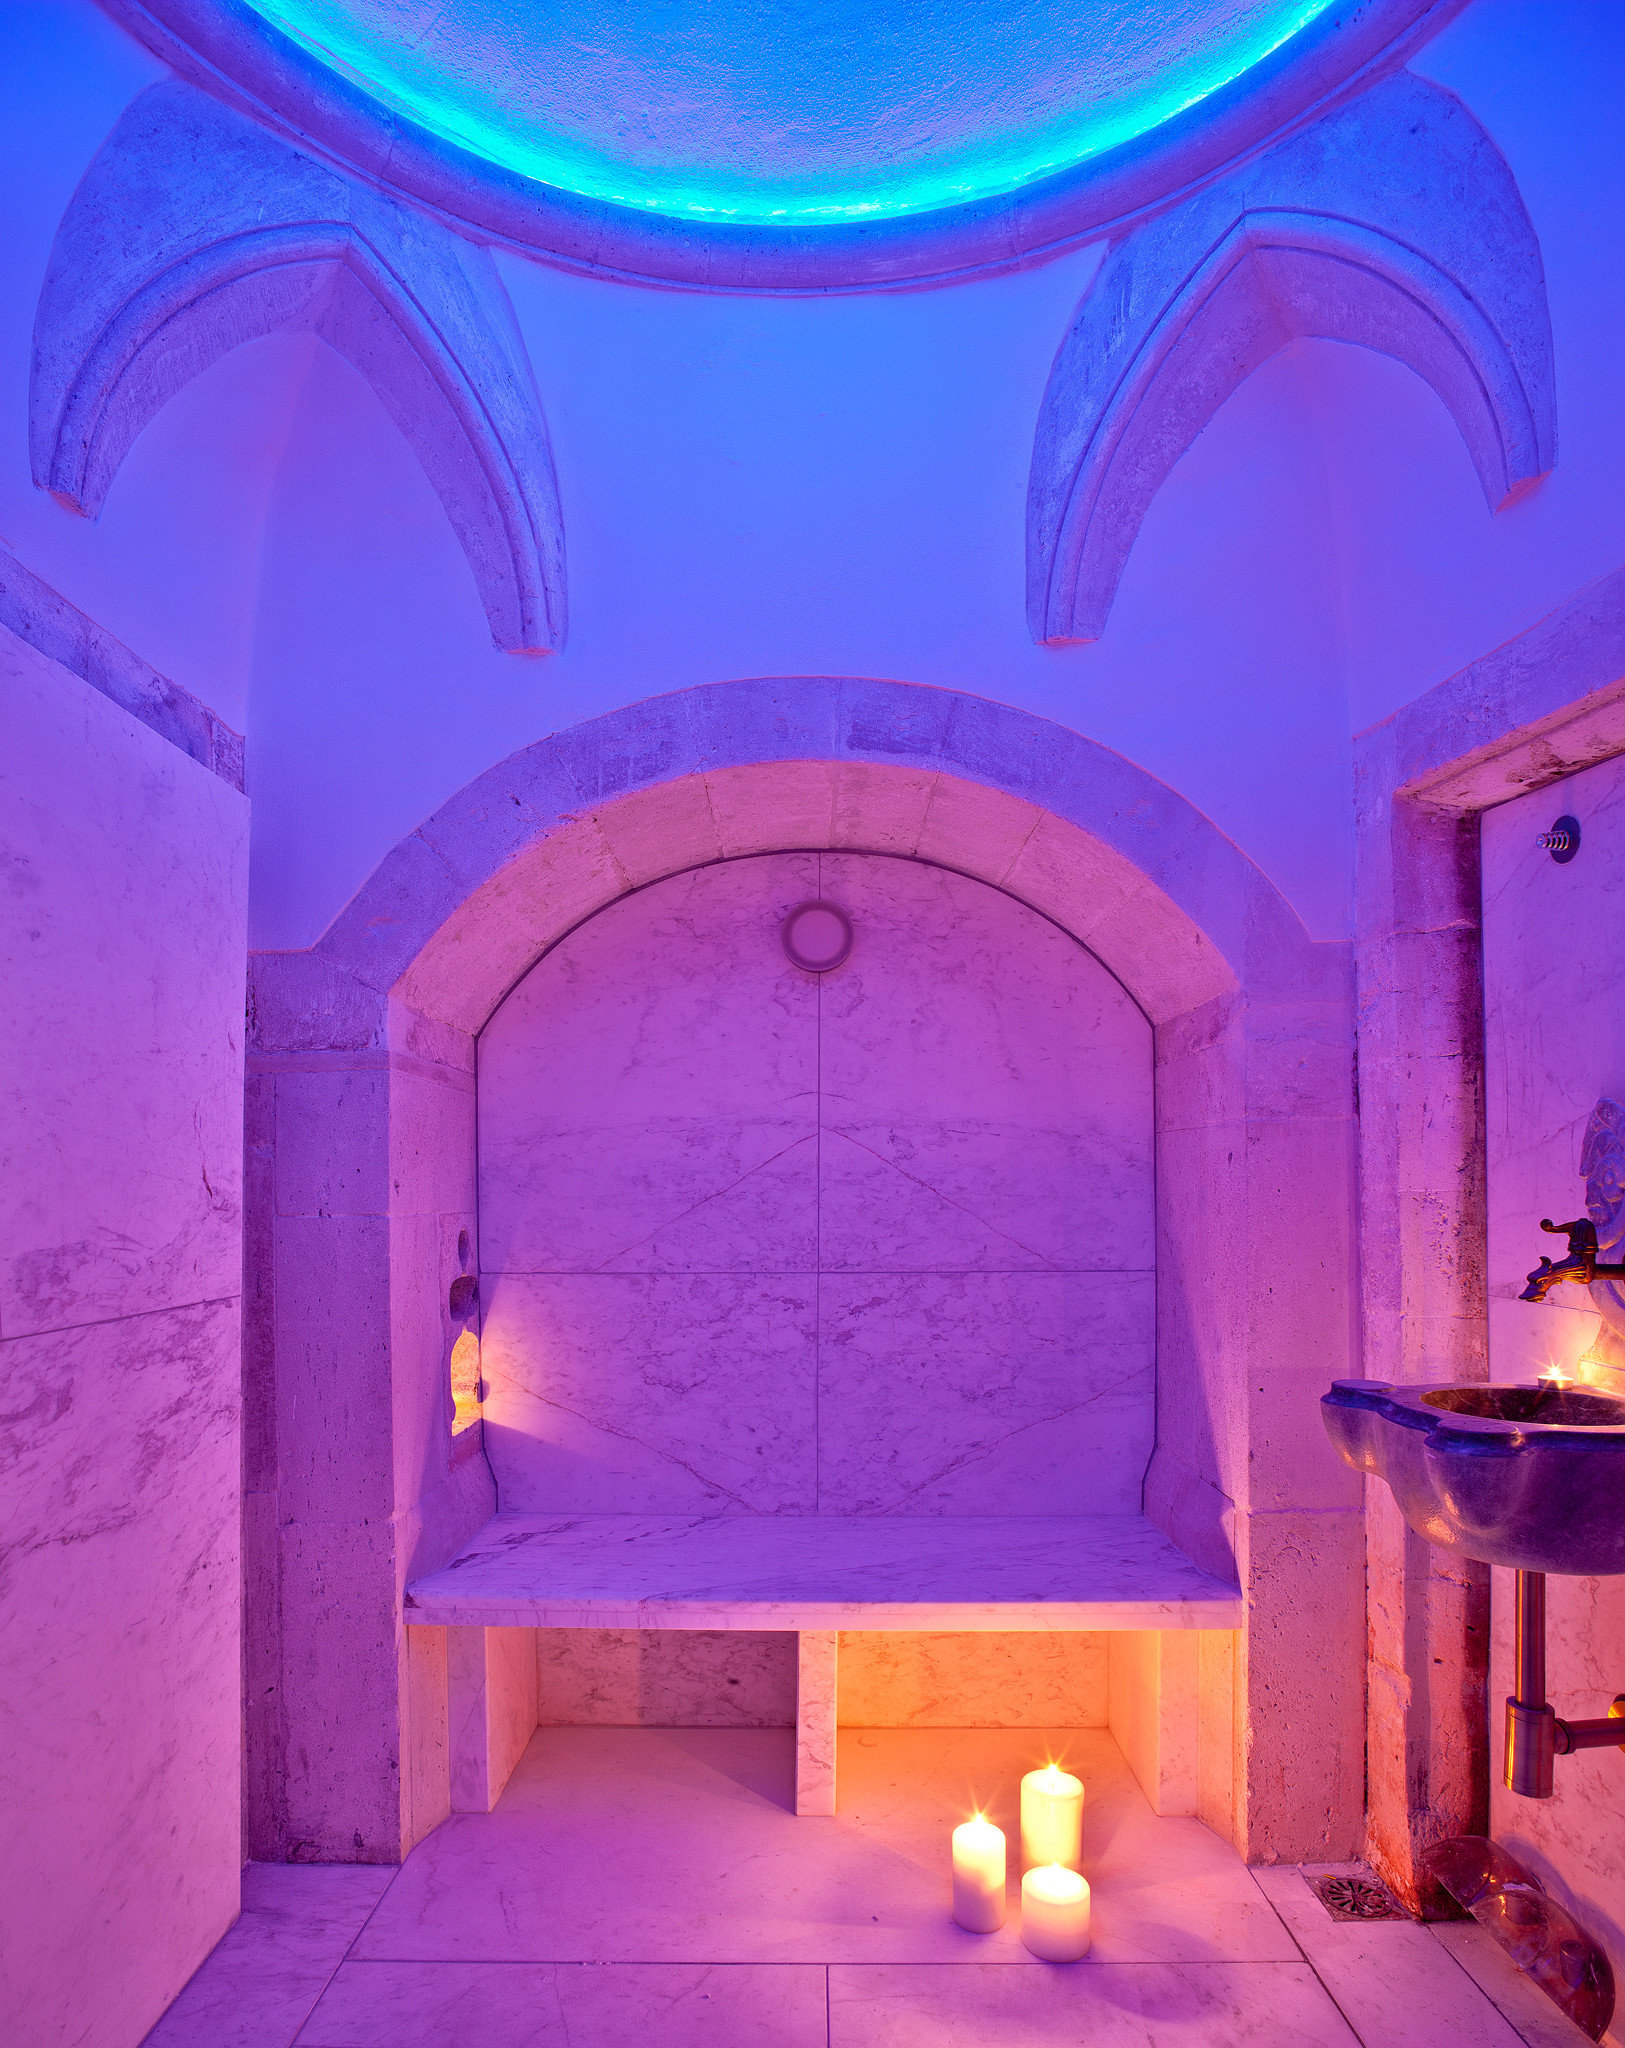 Lounge Modern Romantic Spa color blue lighting arch bright painted